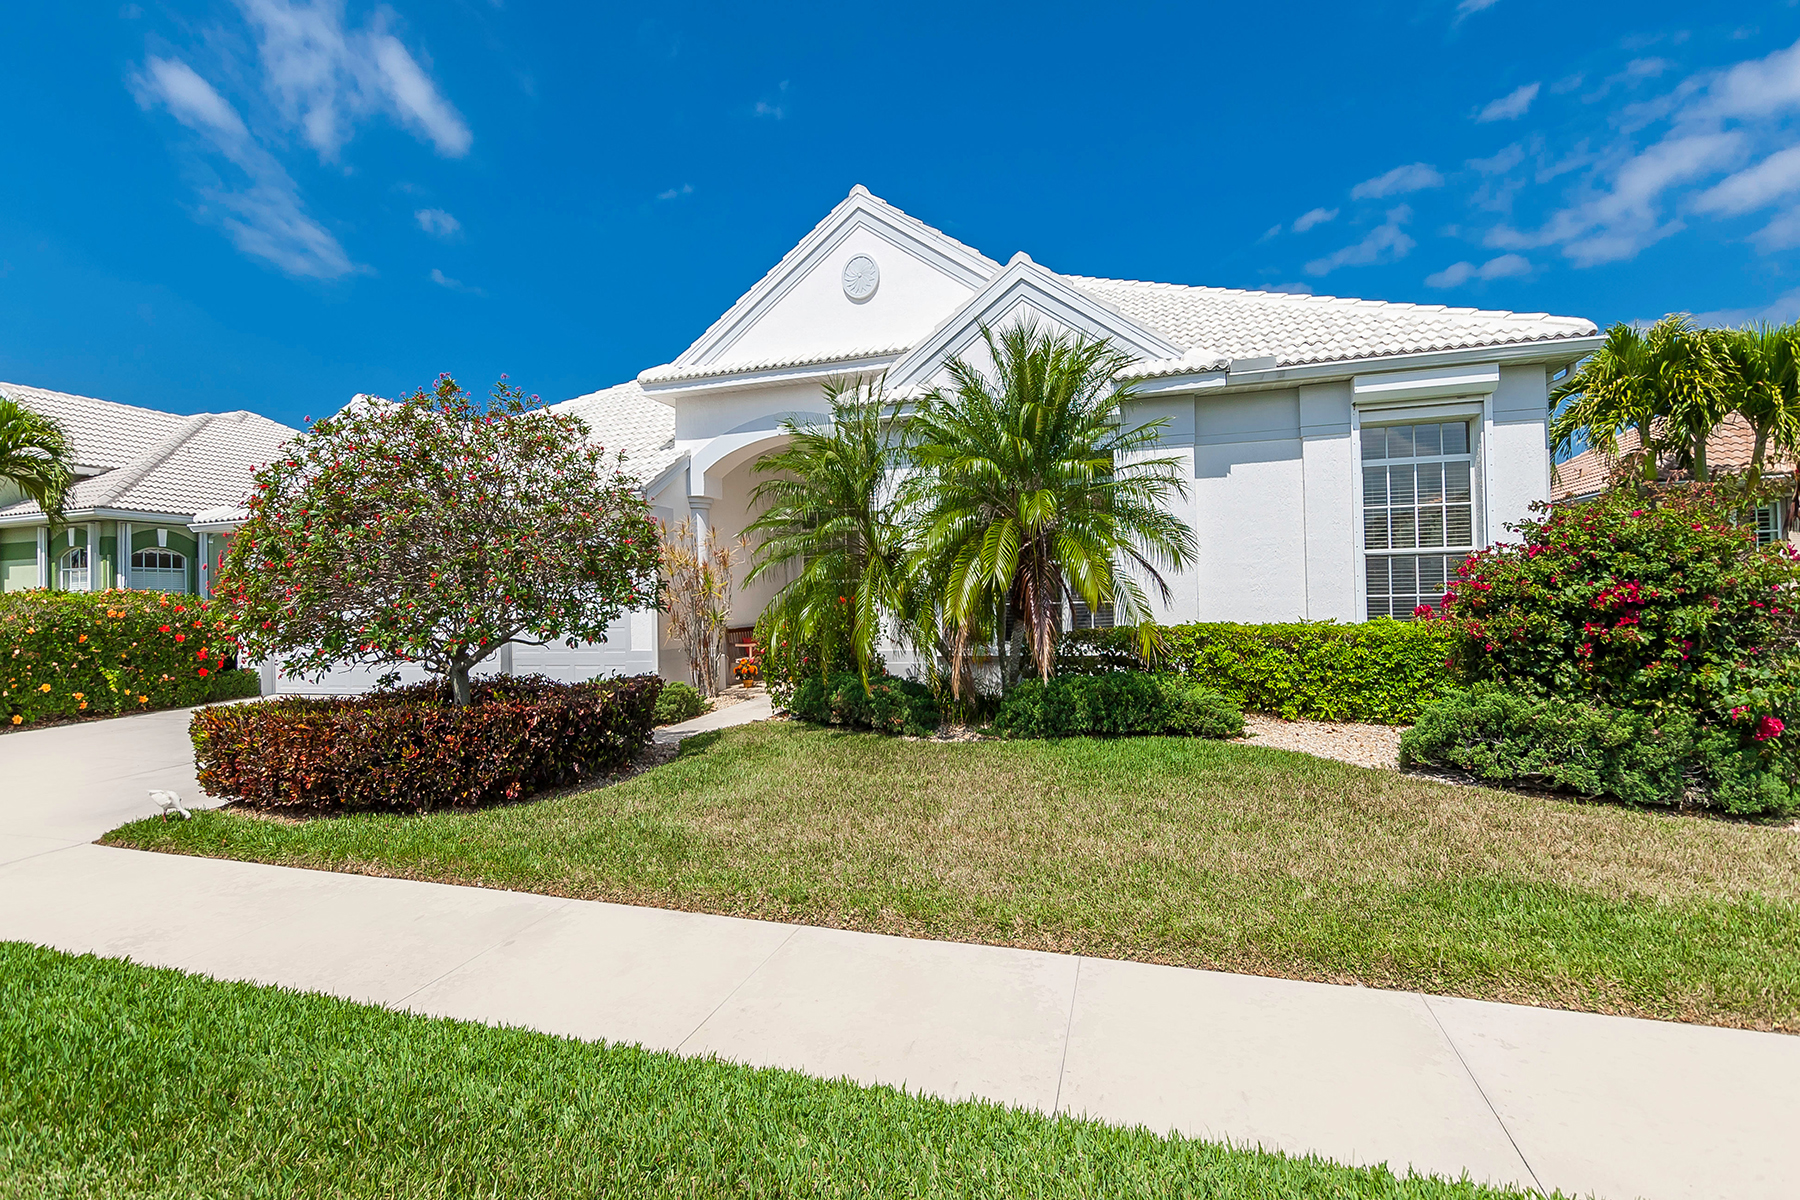 Single Family Home for Sale at PELICAN POINTE GOLF & COUNTRY CLUB 846 Blue Crane Dr, Venice, Florida 34285 United States